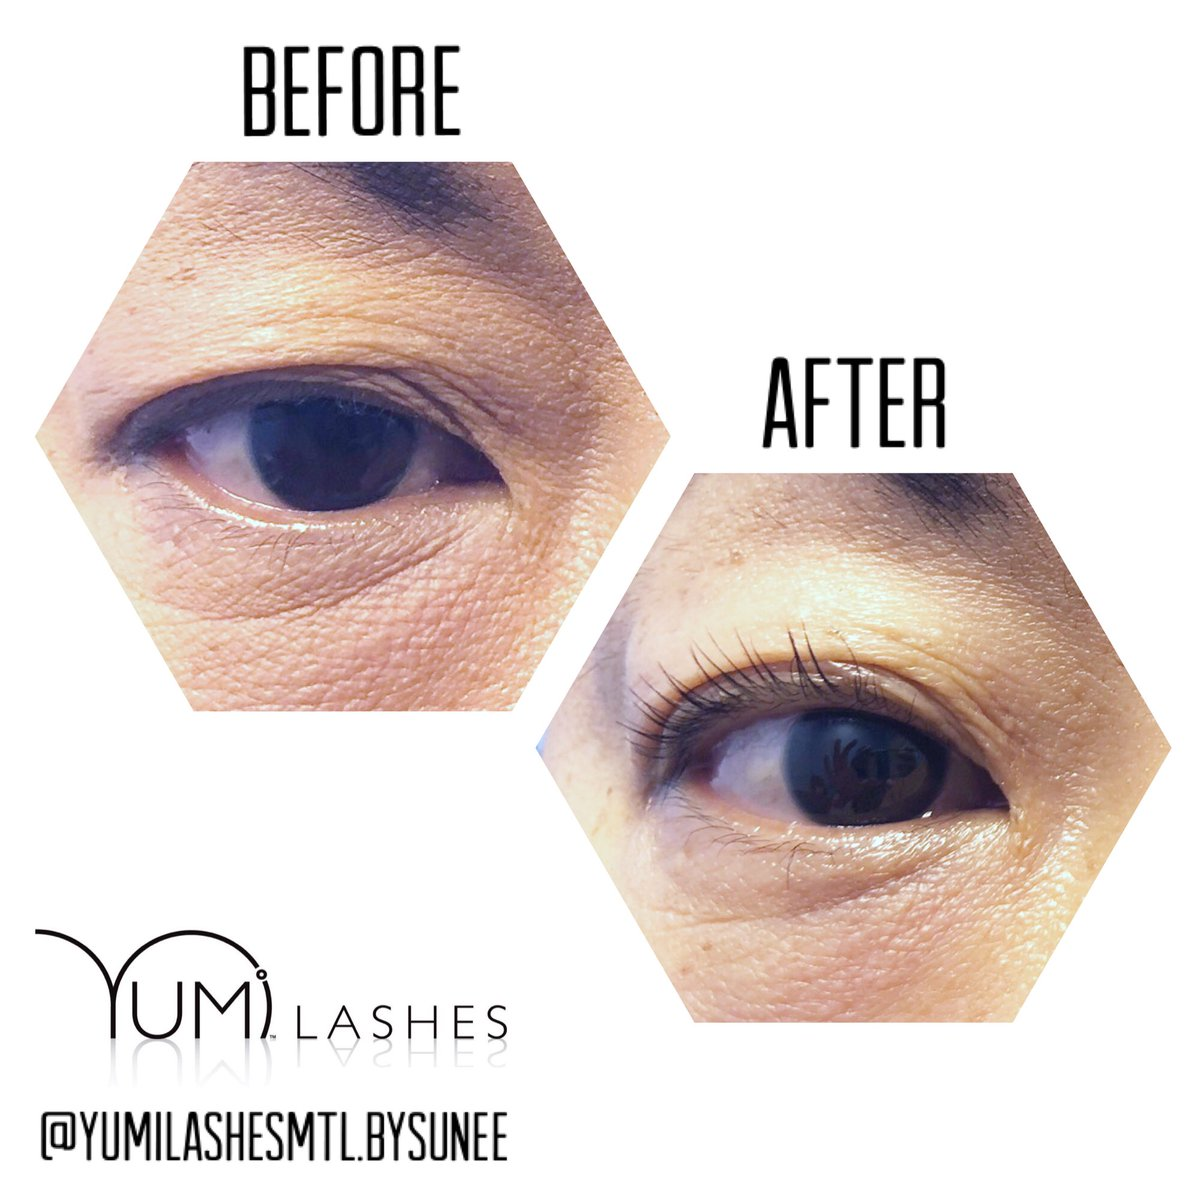 6a9a83891b5 A lash care regime can volumize lashes and over time add growth and bring  them to a healthier state. Lash lifts on the go!